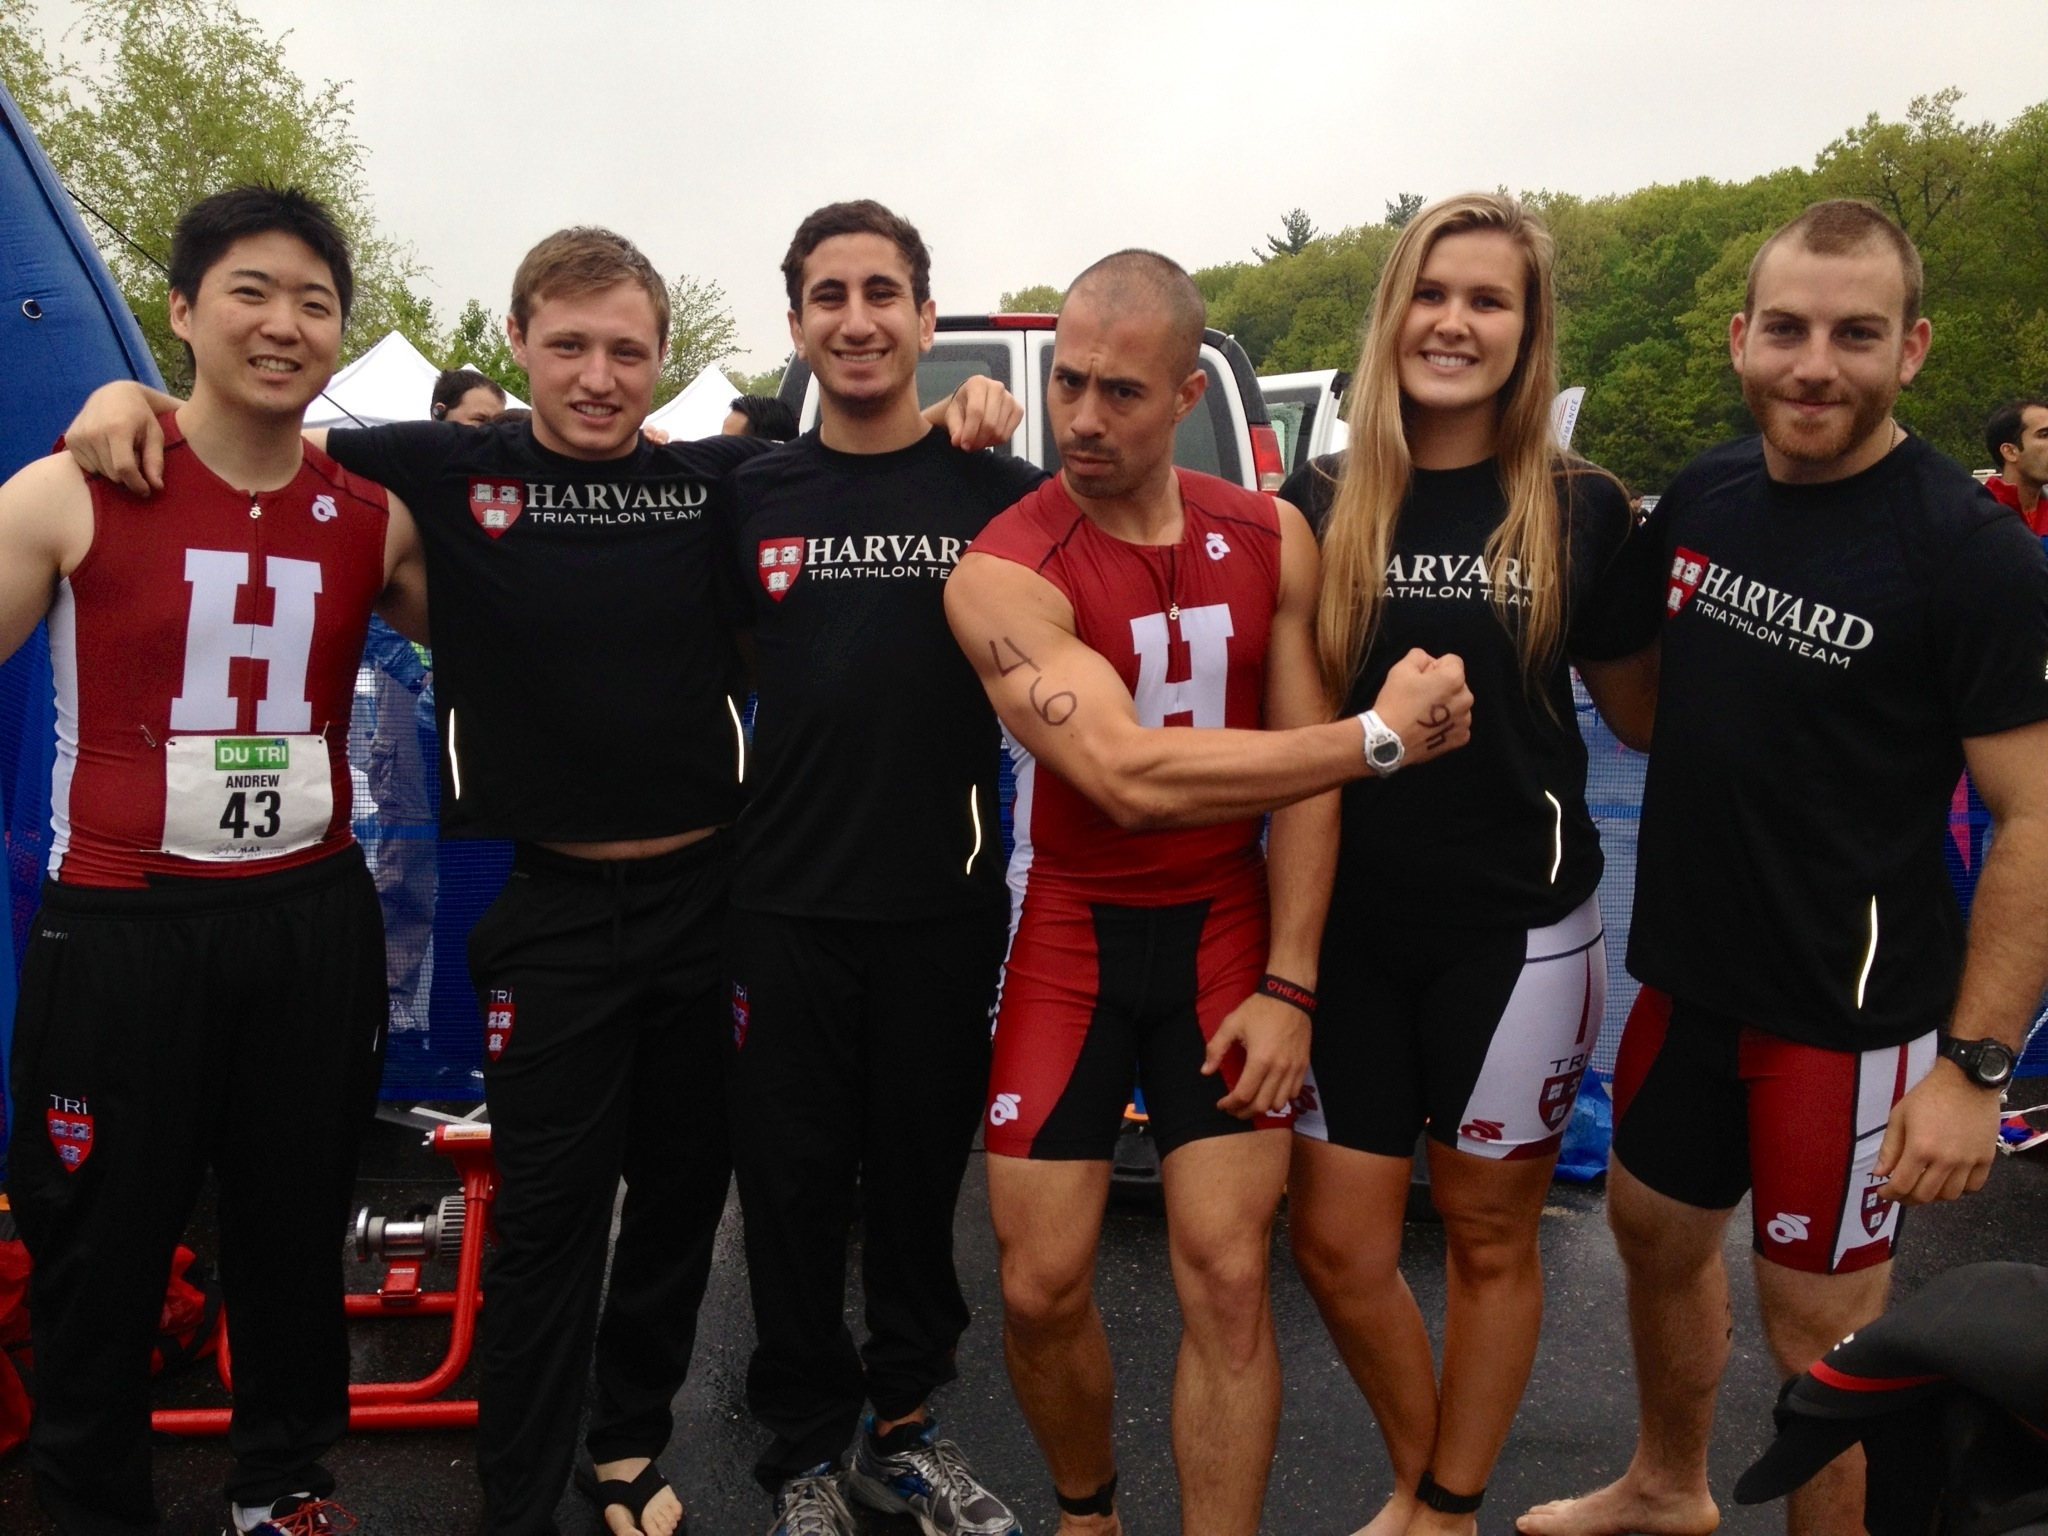 Harvard Tri: Our First Race!